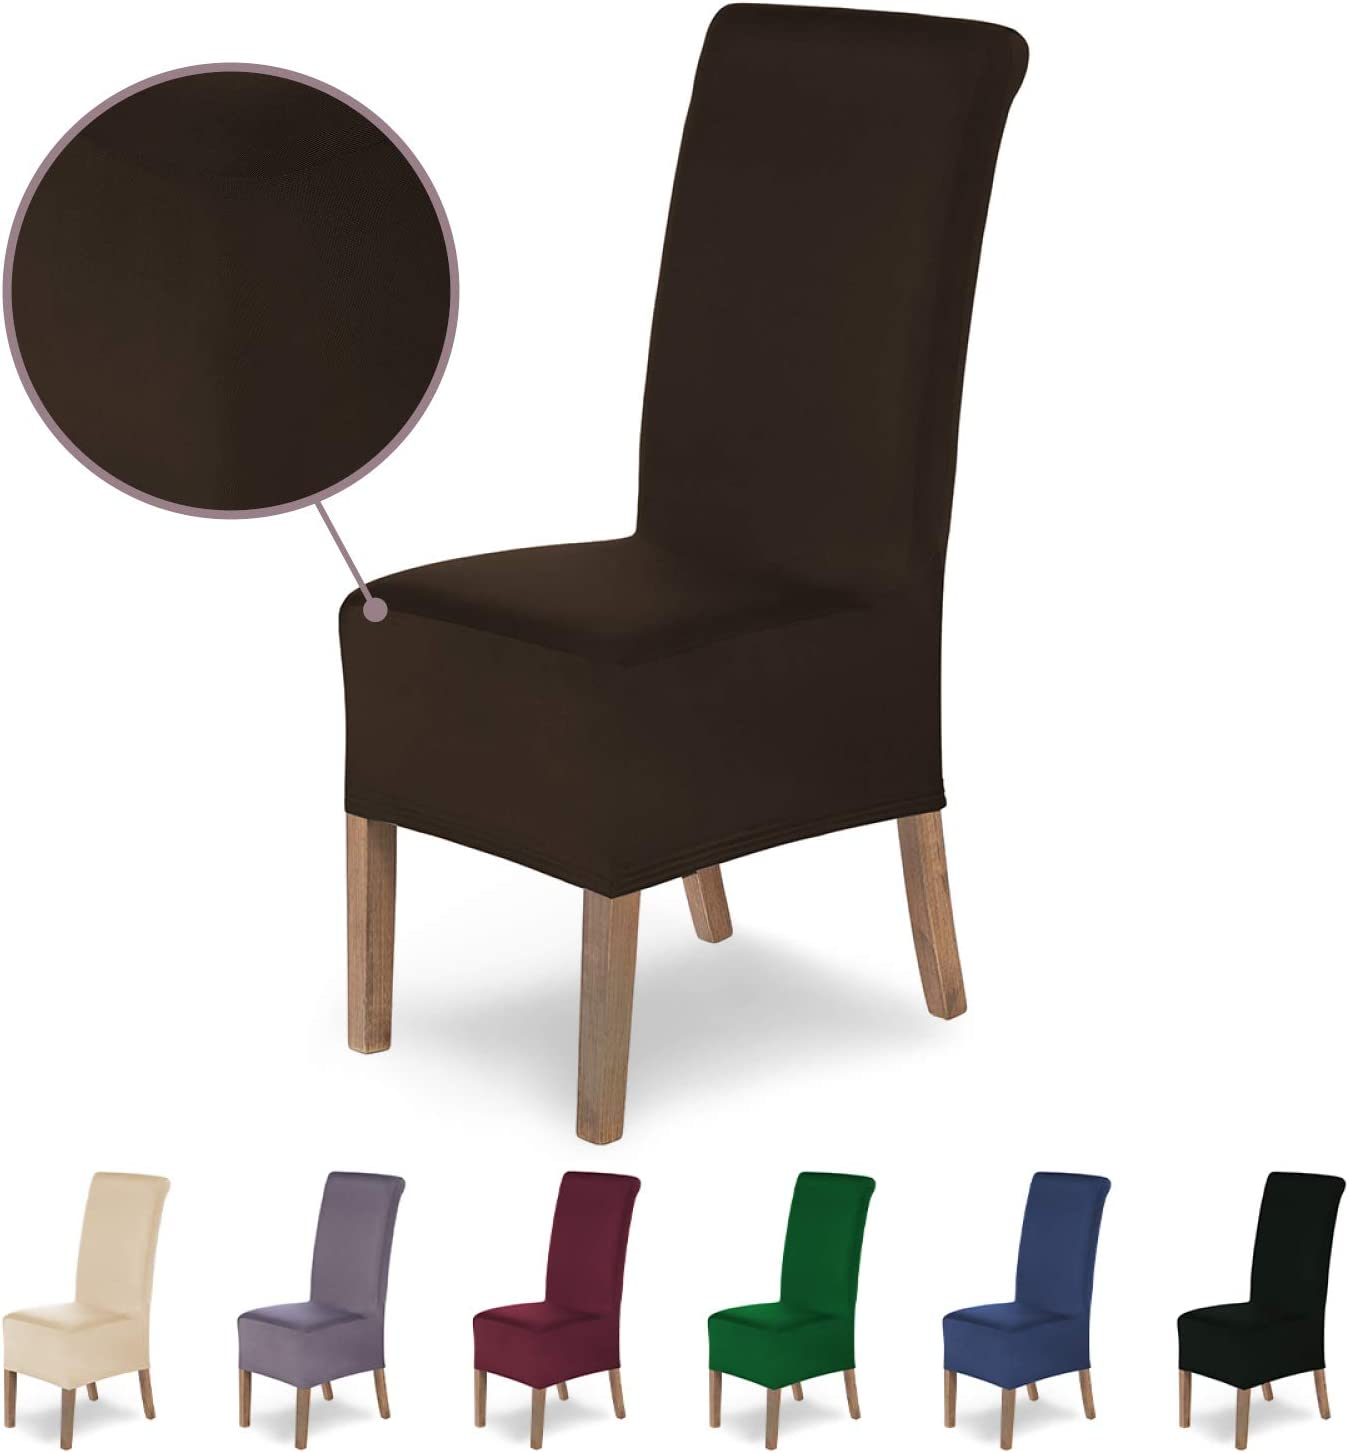 Microfibre Spandex Cover with Elastic Band Bordeaux SCHEFFLER-Home Stretch Chair Cover Lena Elegant Chair Cover Elastic Dining Chair Slipcover